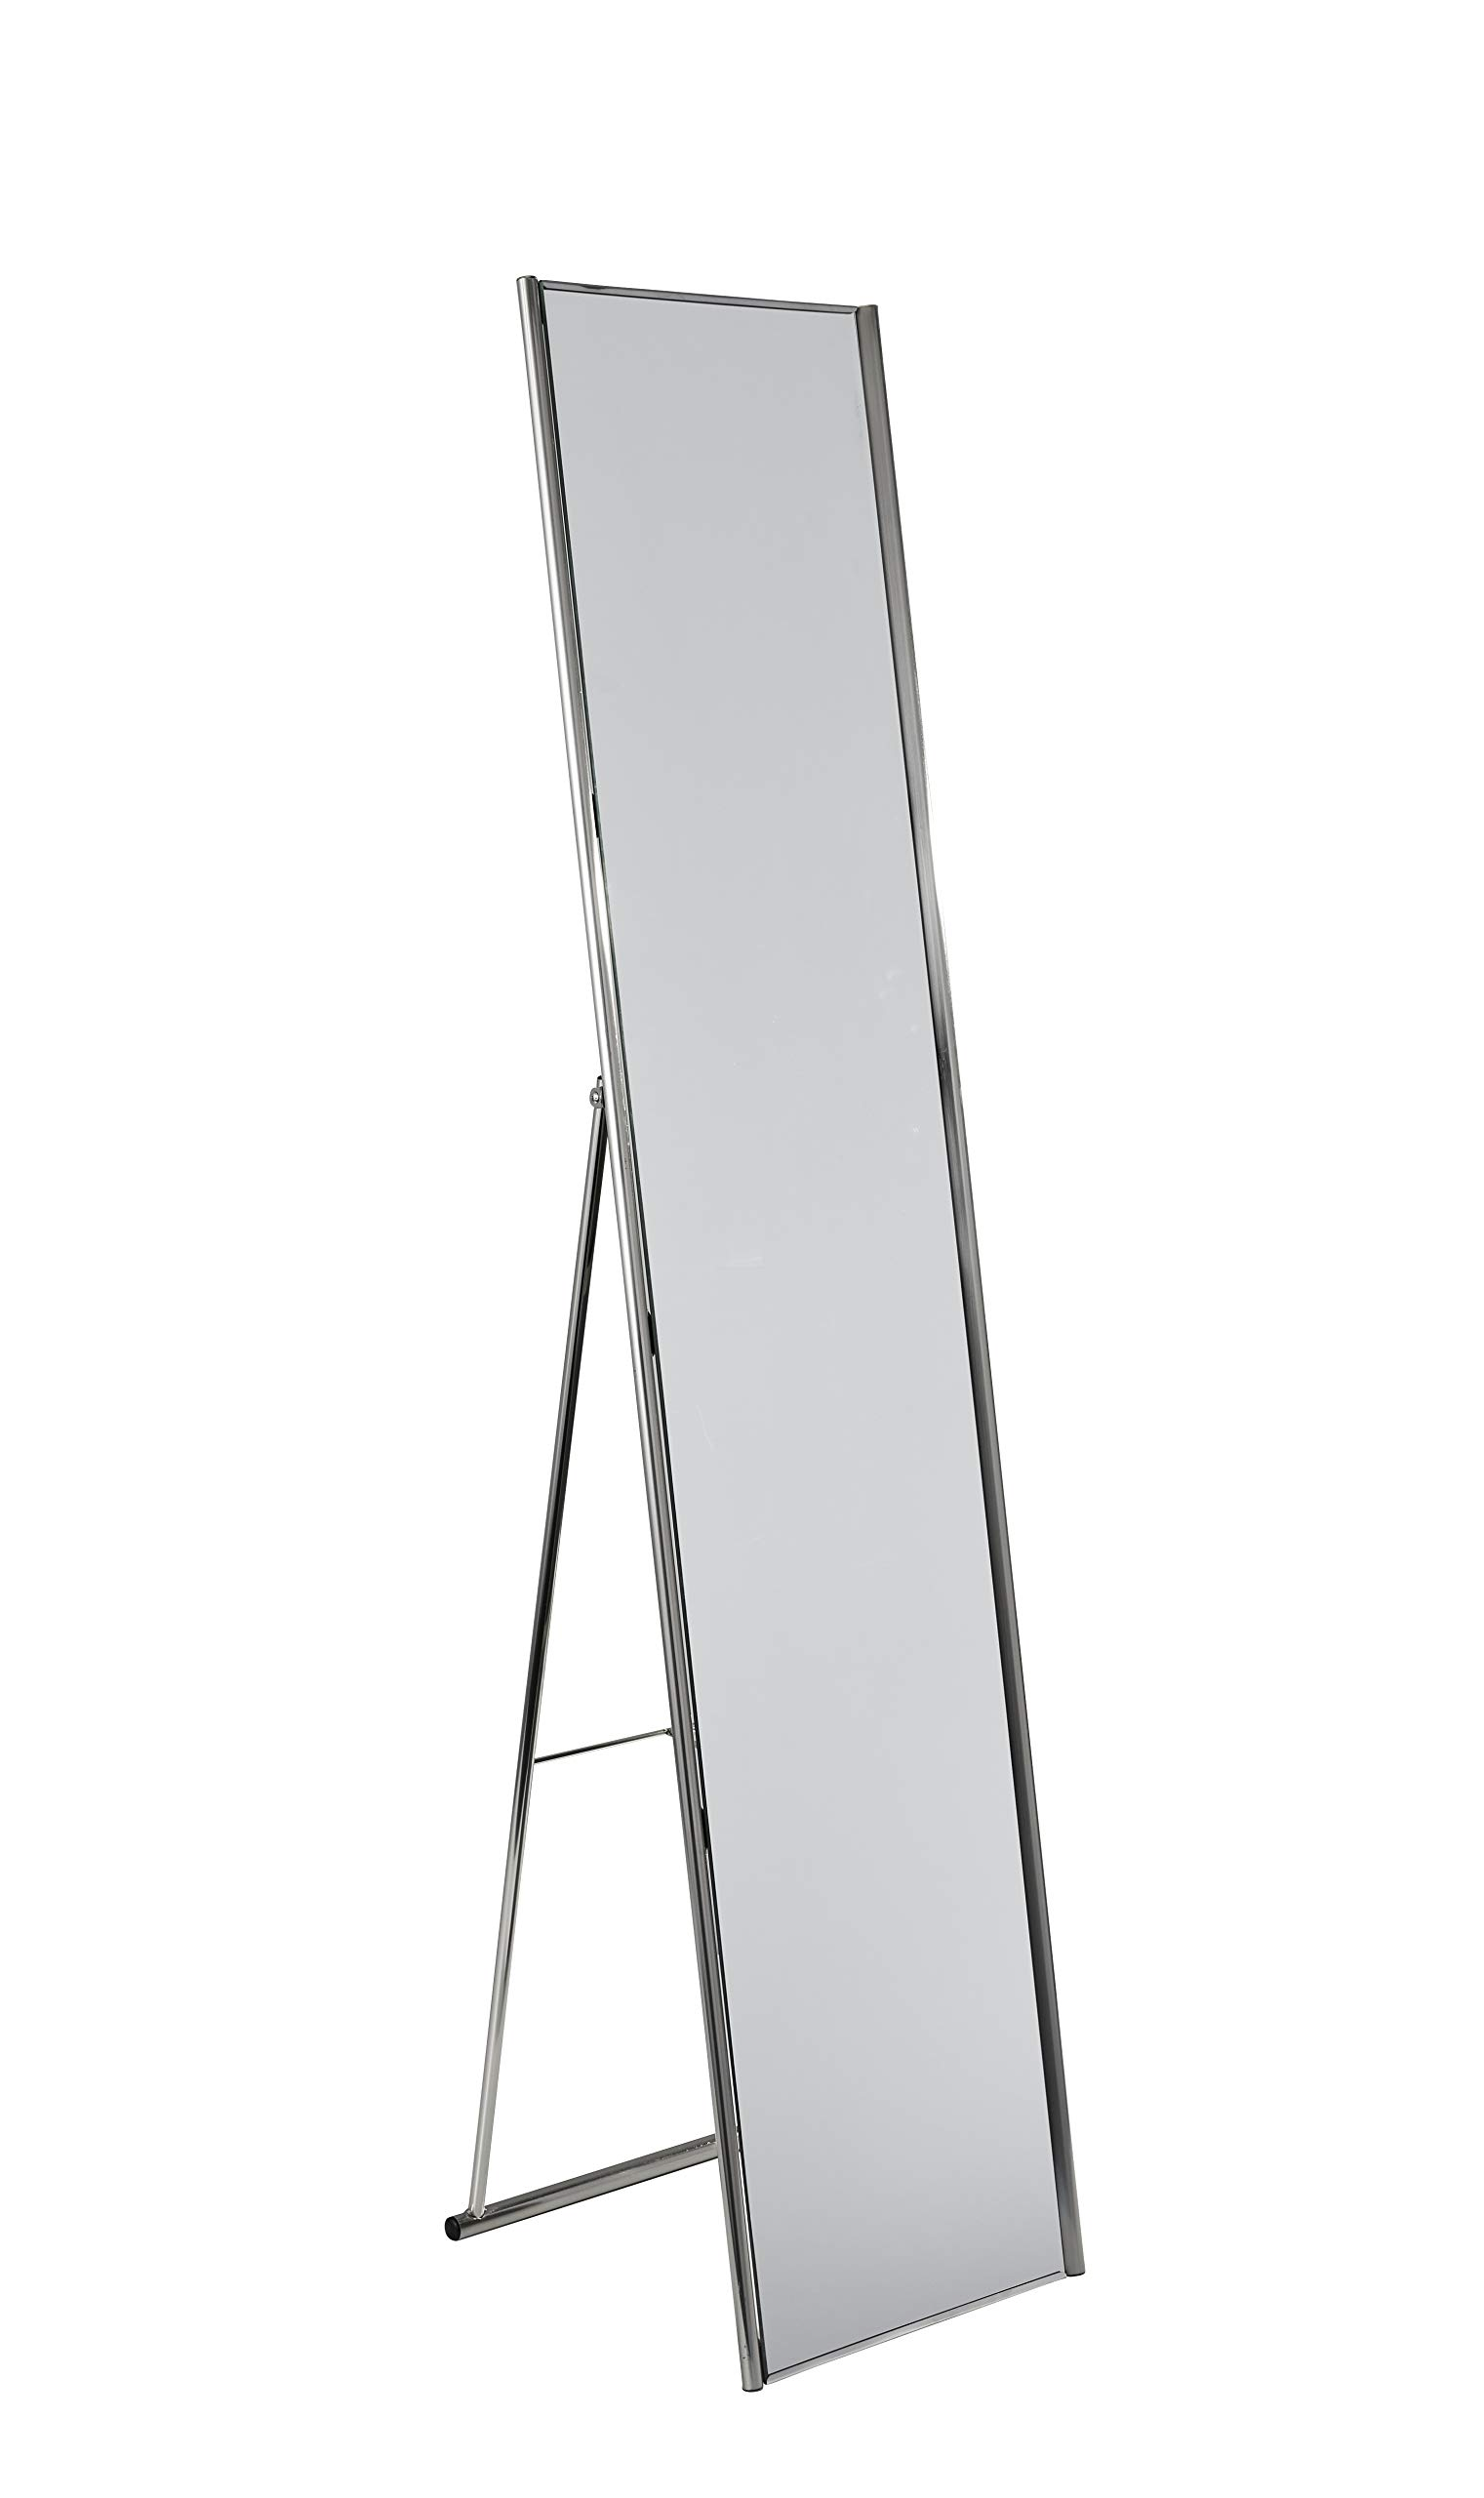 Adesso WK2444-22 Alice Floor Mirror - Powder Coated Champagne Full Length Mirror with Steel Finishing. Home Decor Accessories by Adesso